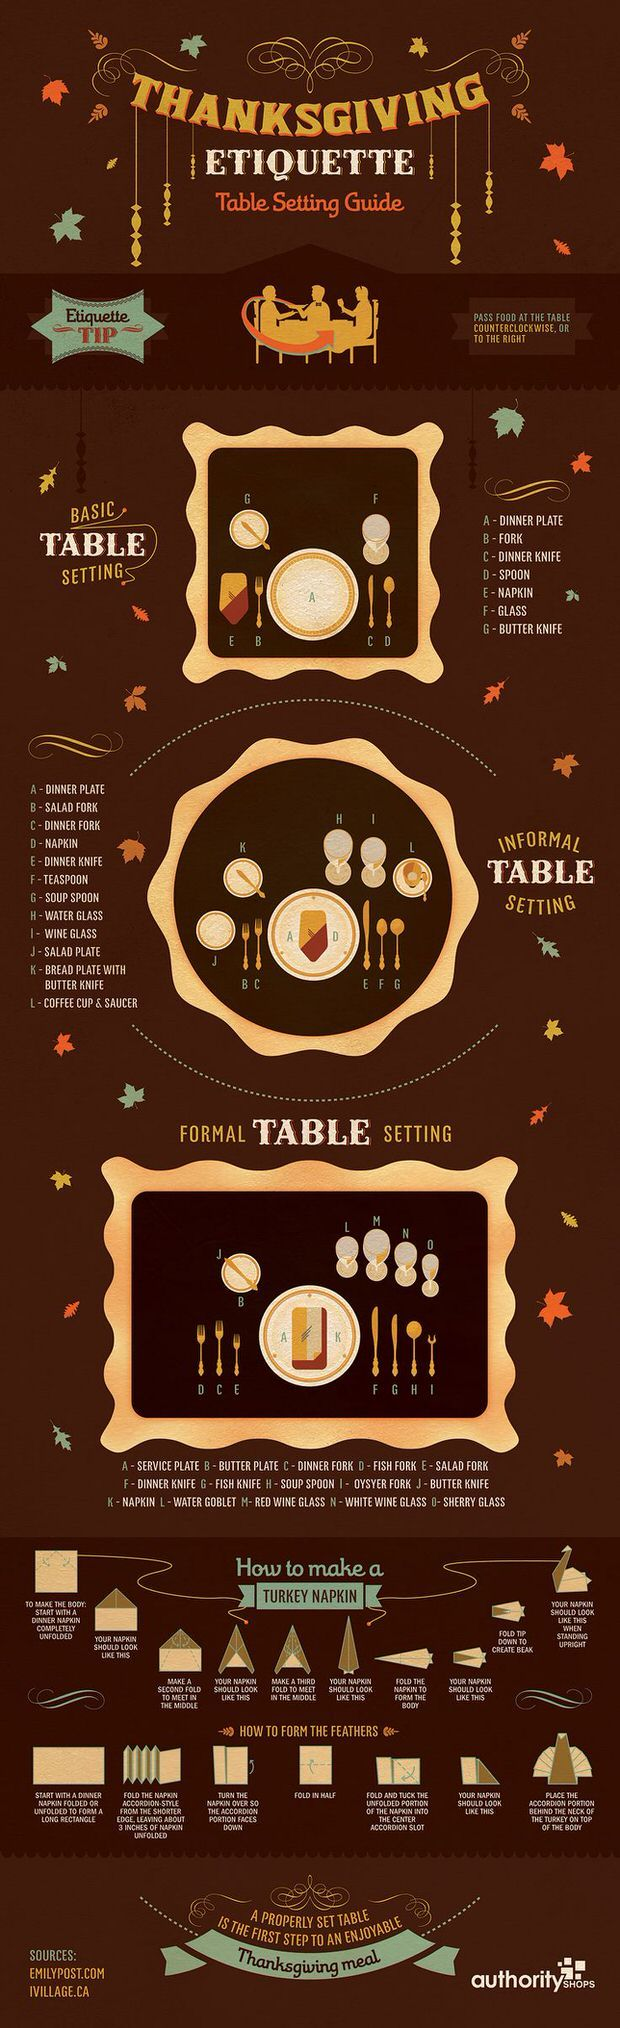 If there is one time of year I like to take the time to create a high style table, it's Thanksgiving! After all, for those few hours, it's all about the table, isn't it? It's kinda like what the ...